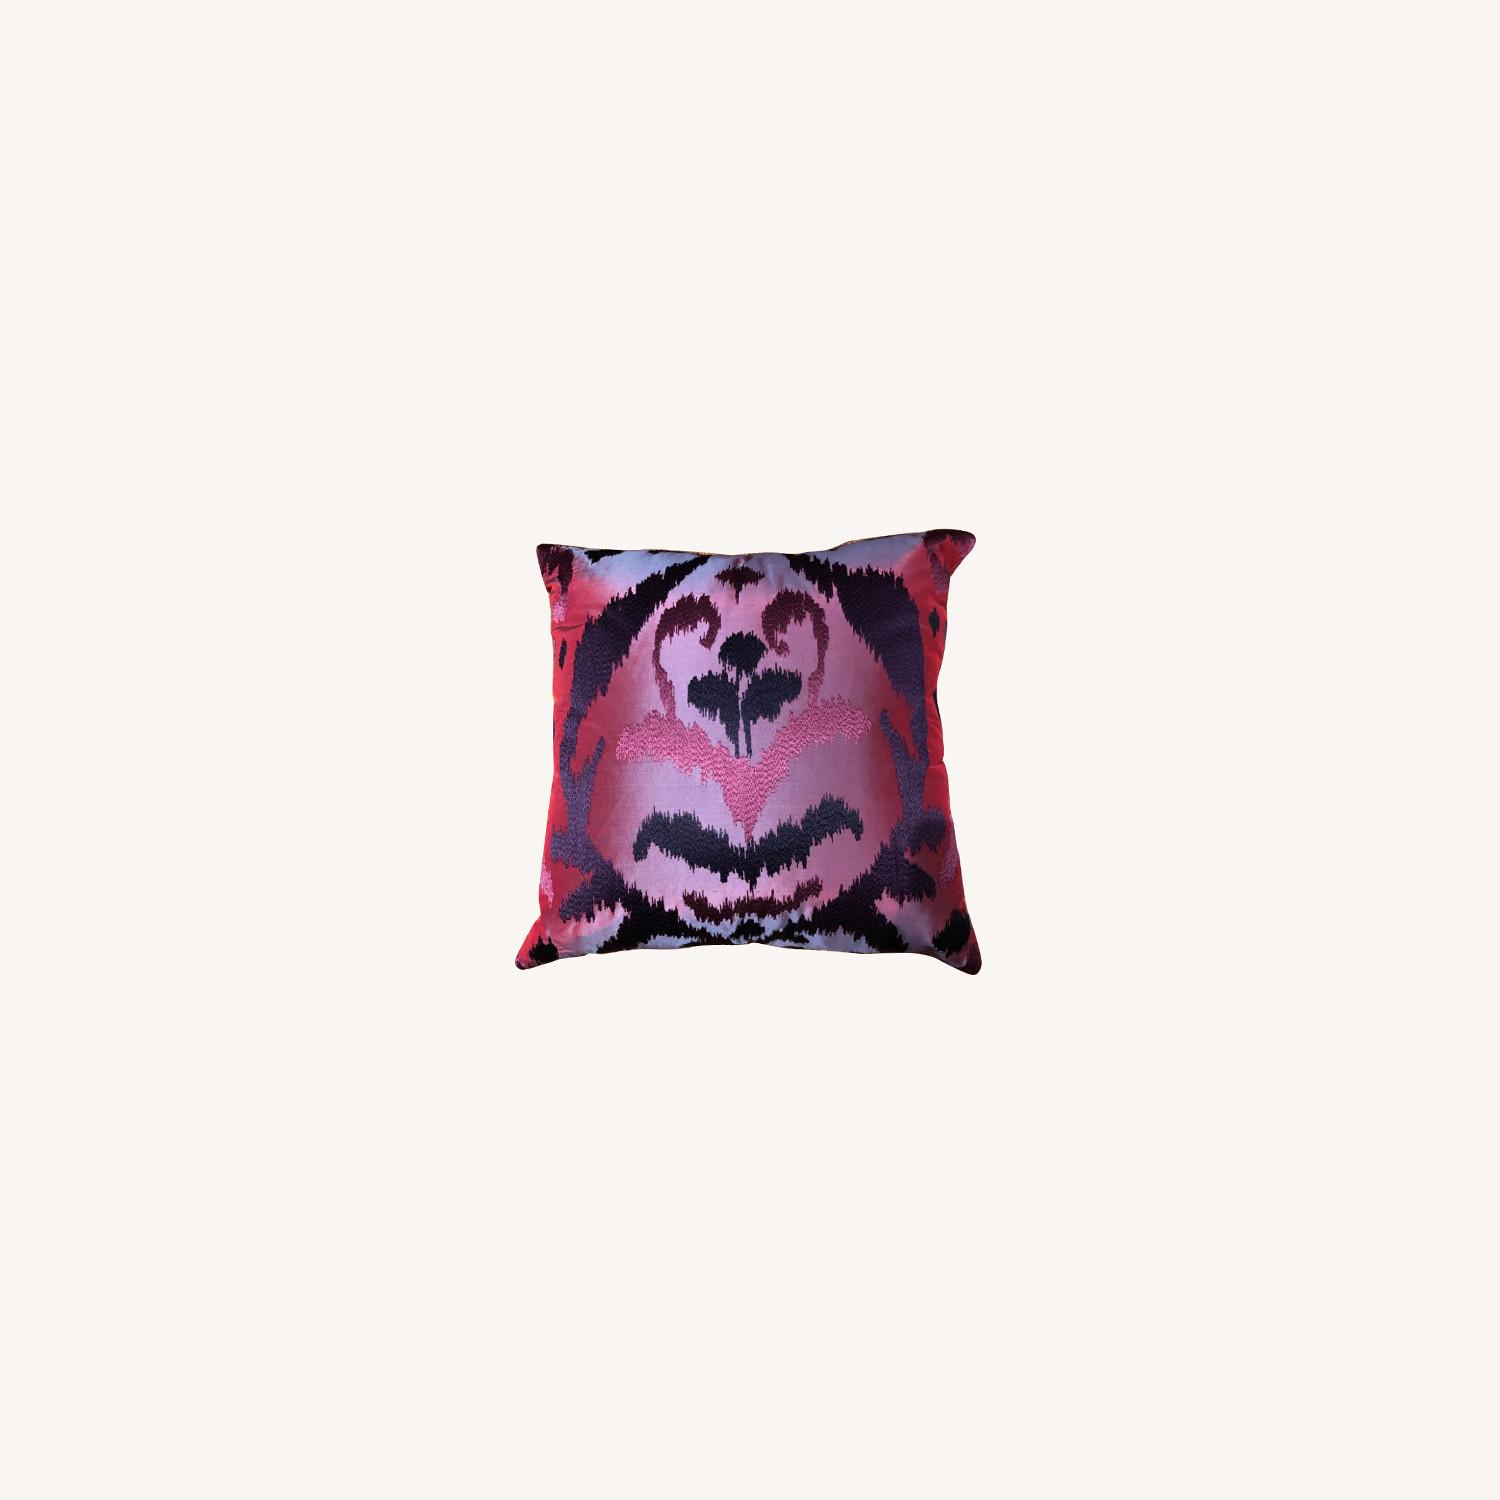 Custom Silk Embroidered Ikat Pillows - image-0